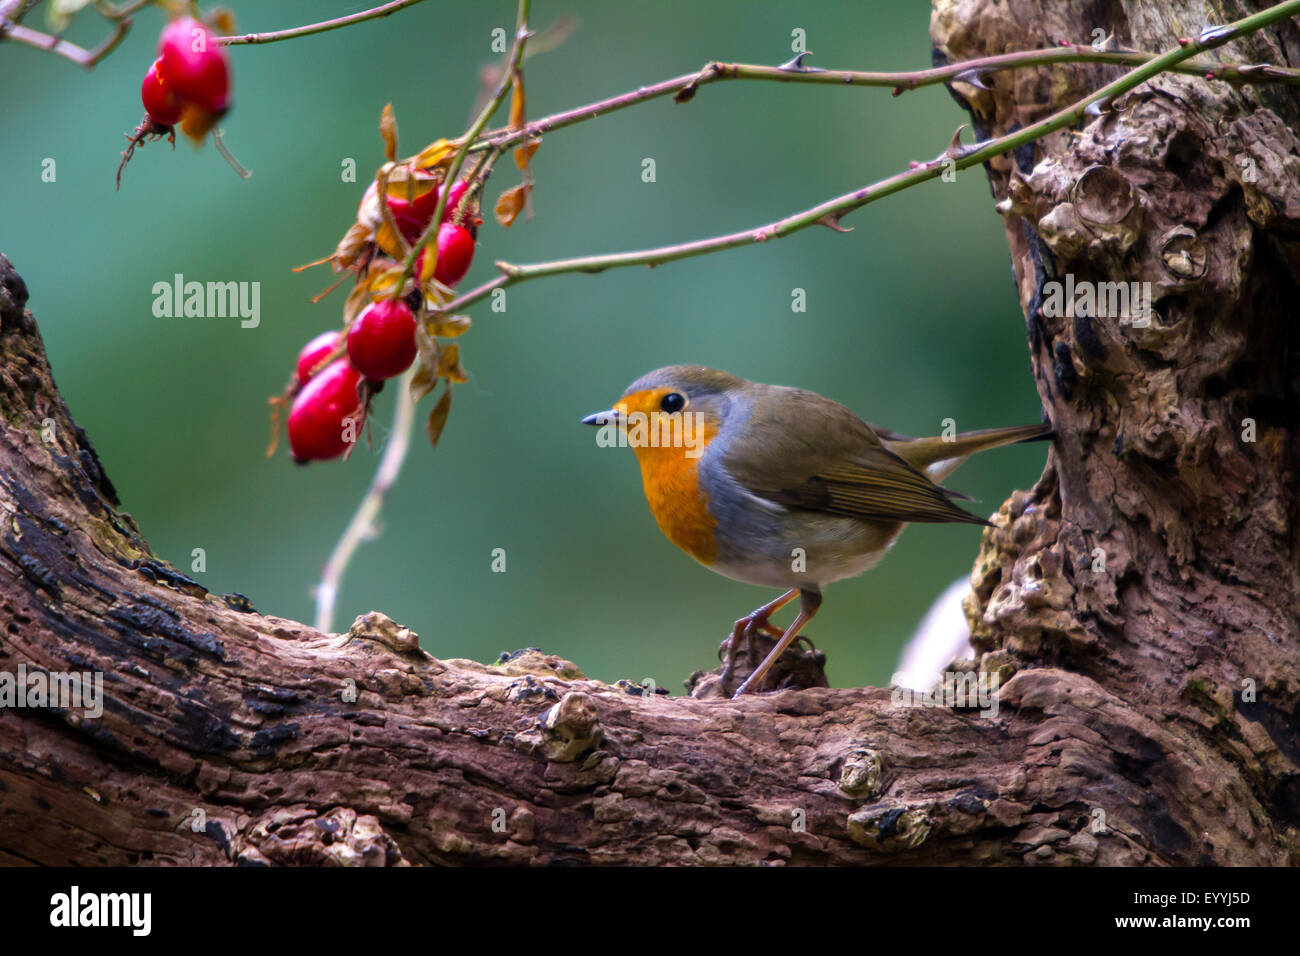 European robin (Erithacus rubecula), with rosehips on an old tree, Switzerland, Sankt Gallen, Rheineck - Stock Image